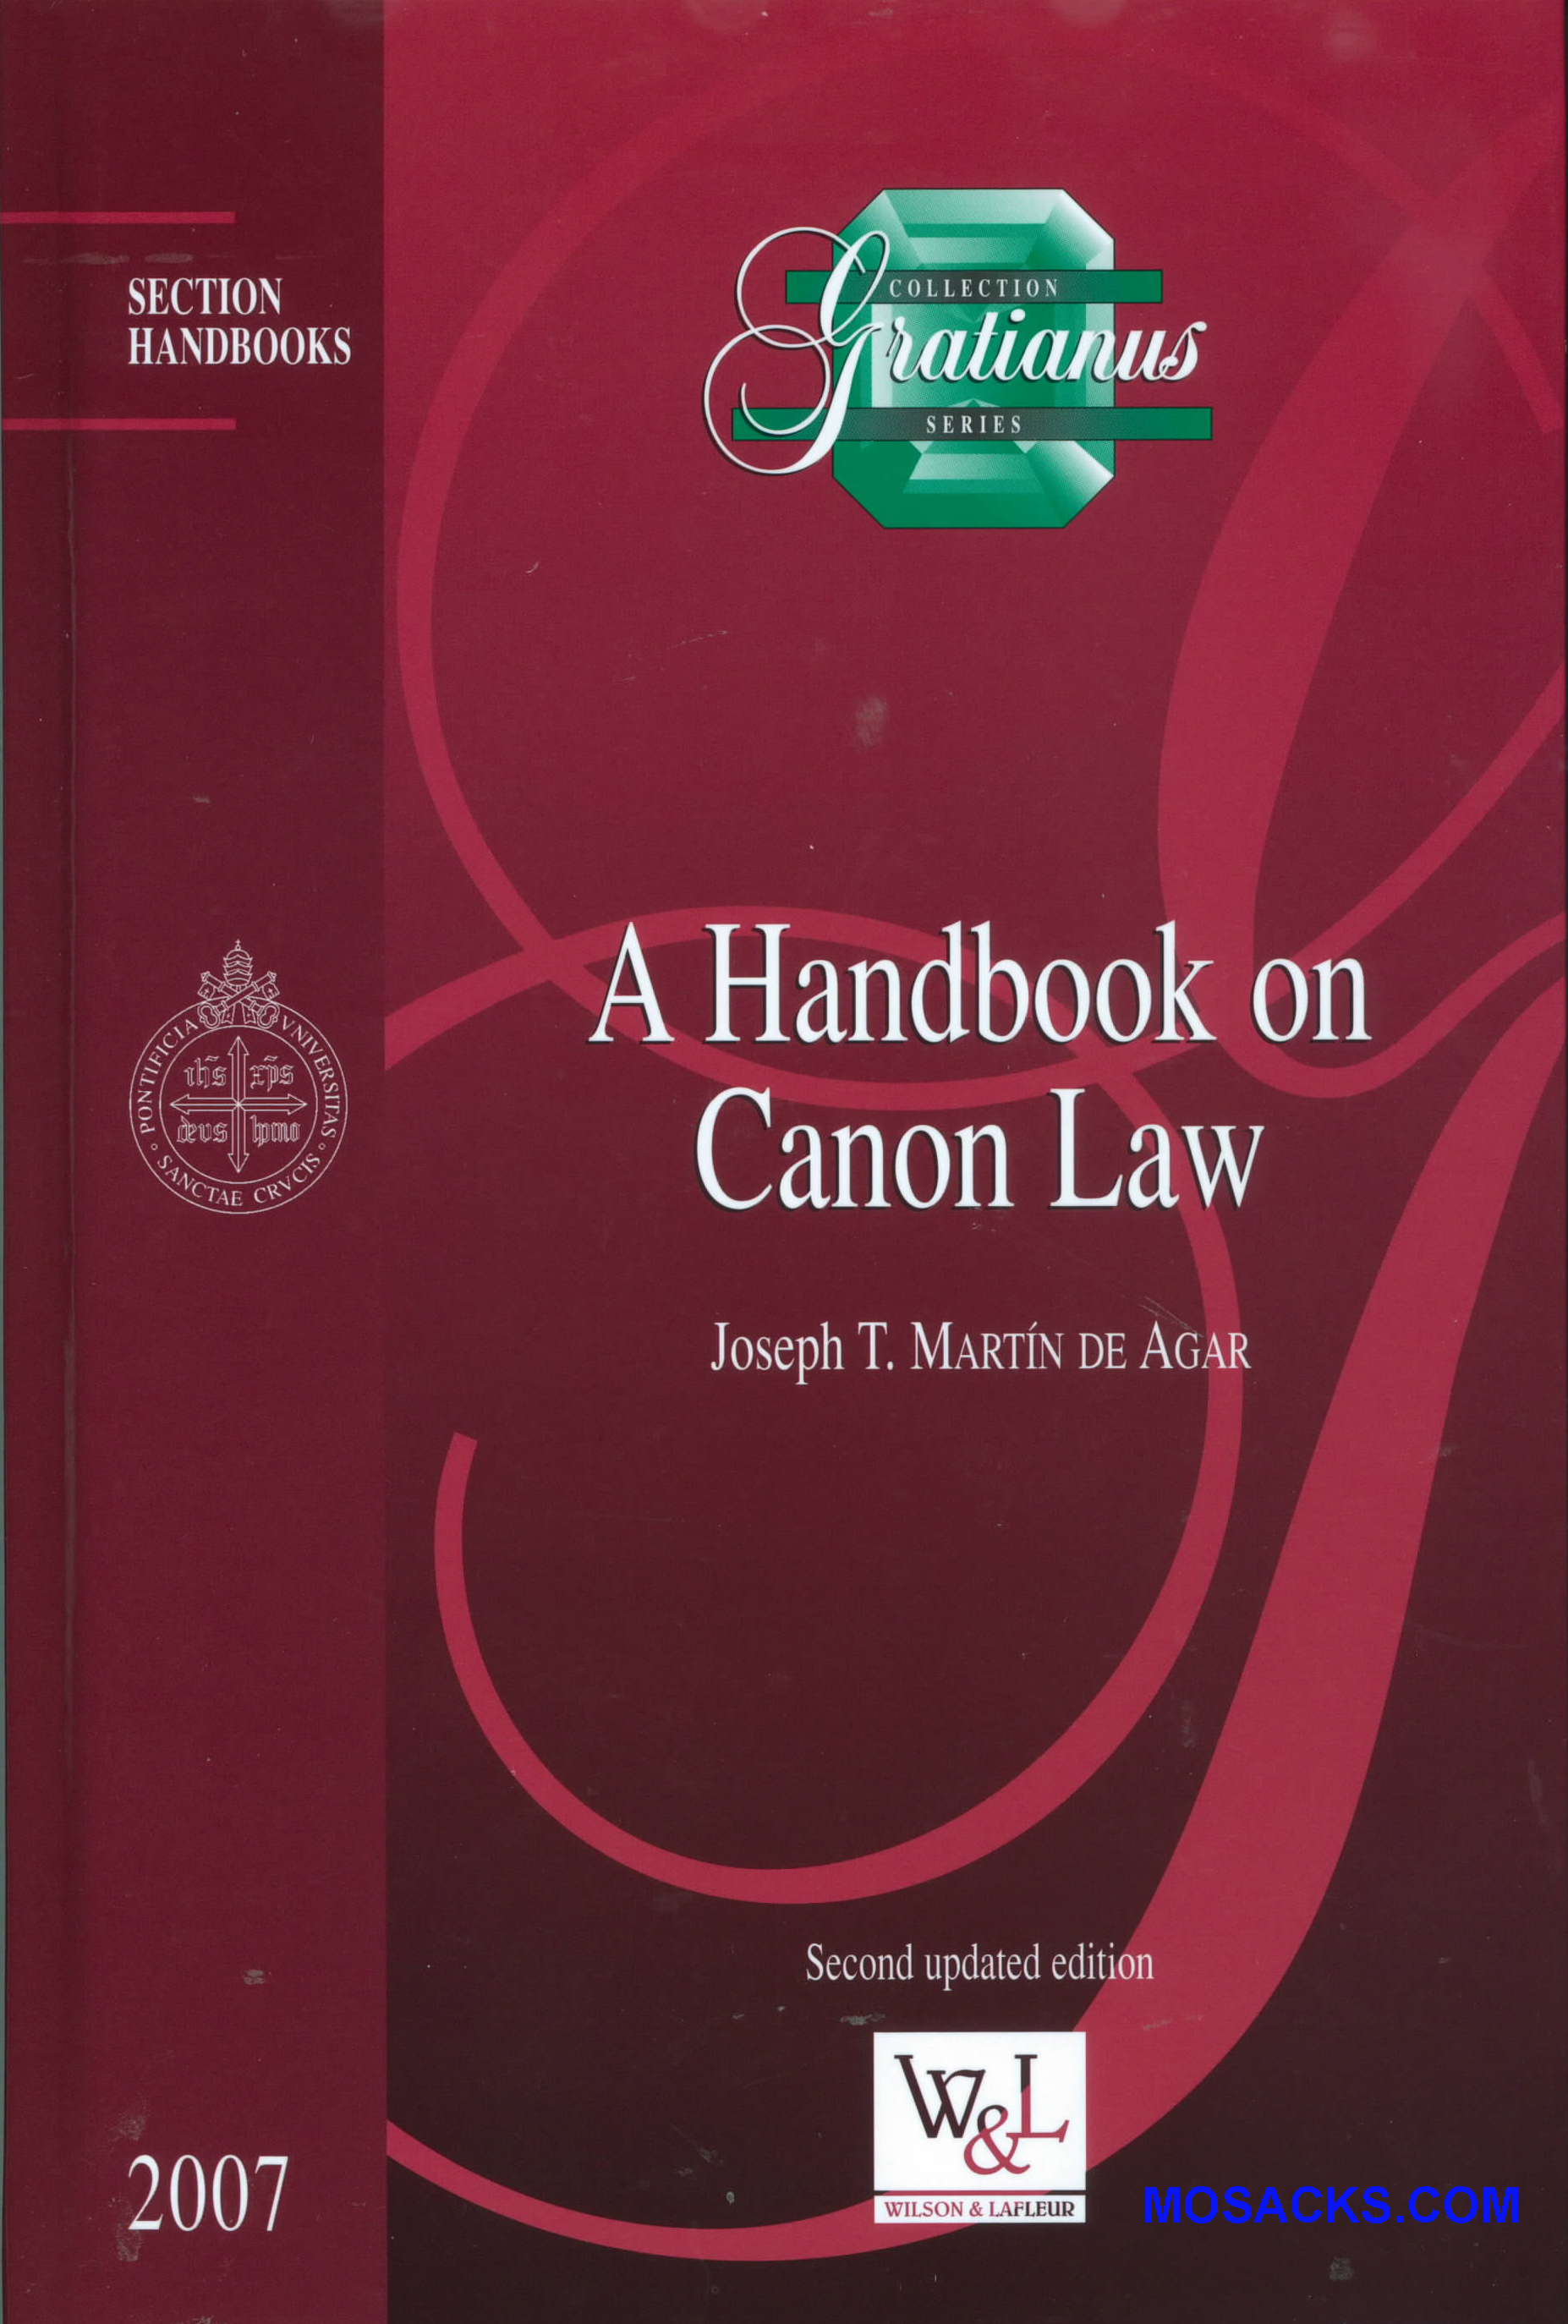 A Handbook on Canon Law by Joseph Martin De Agar 445-78041